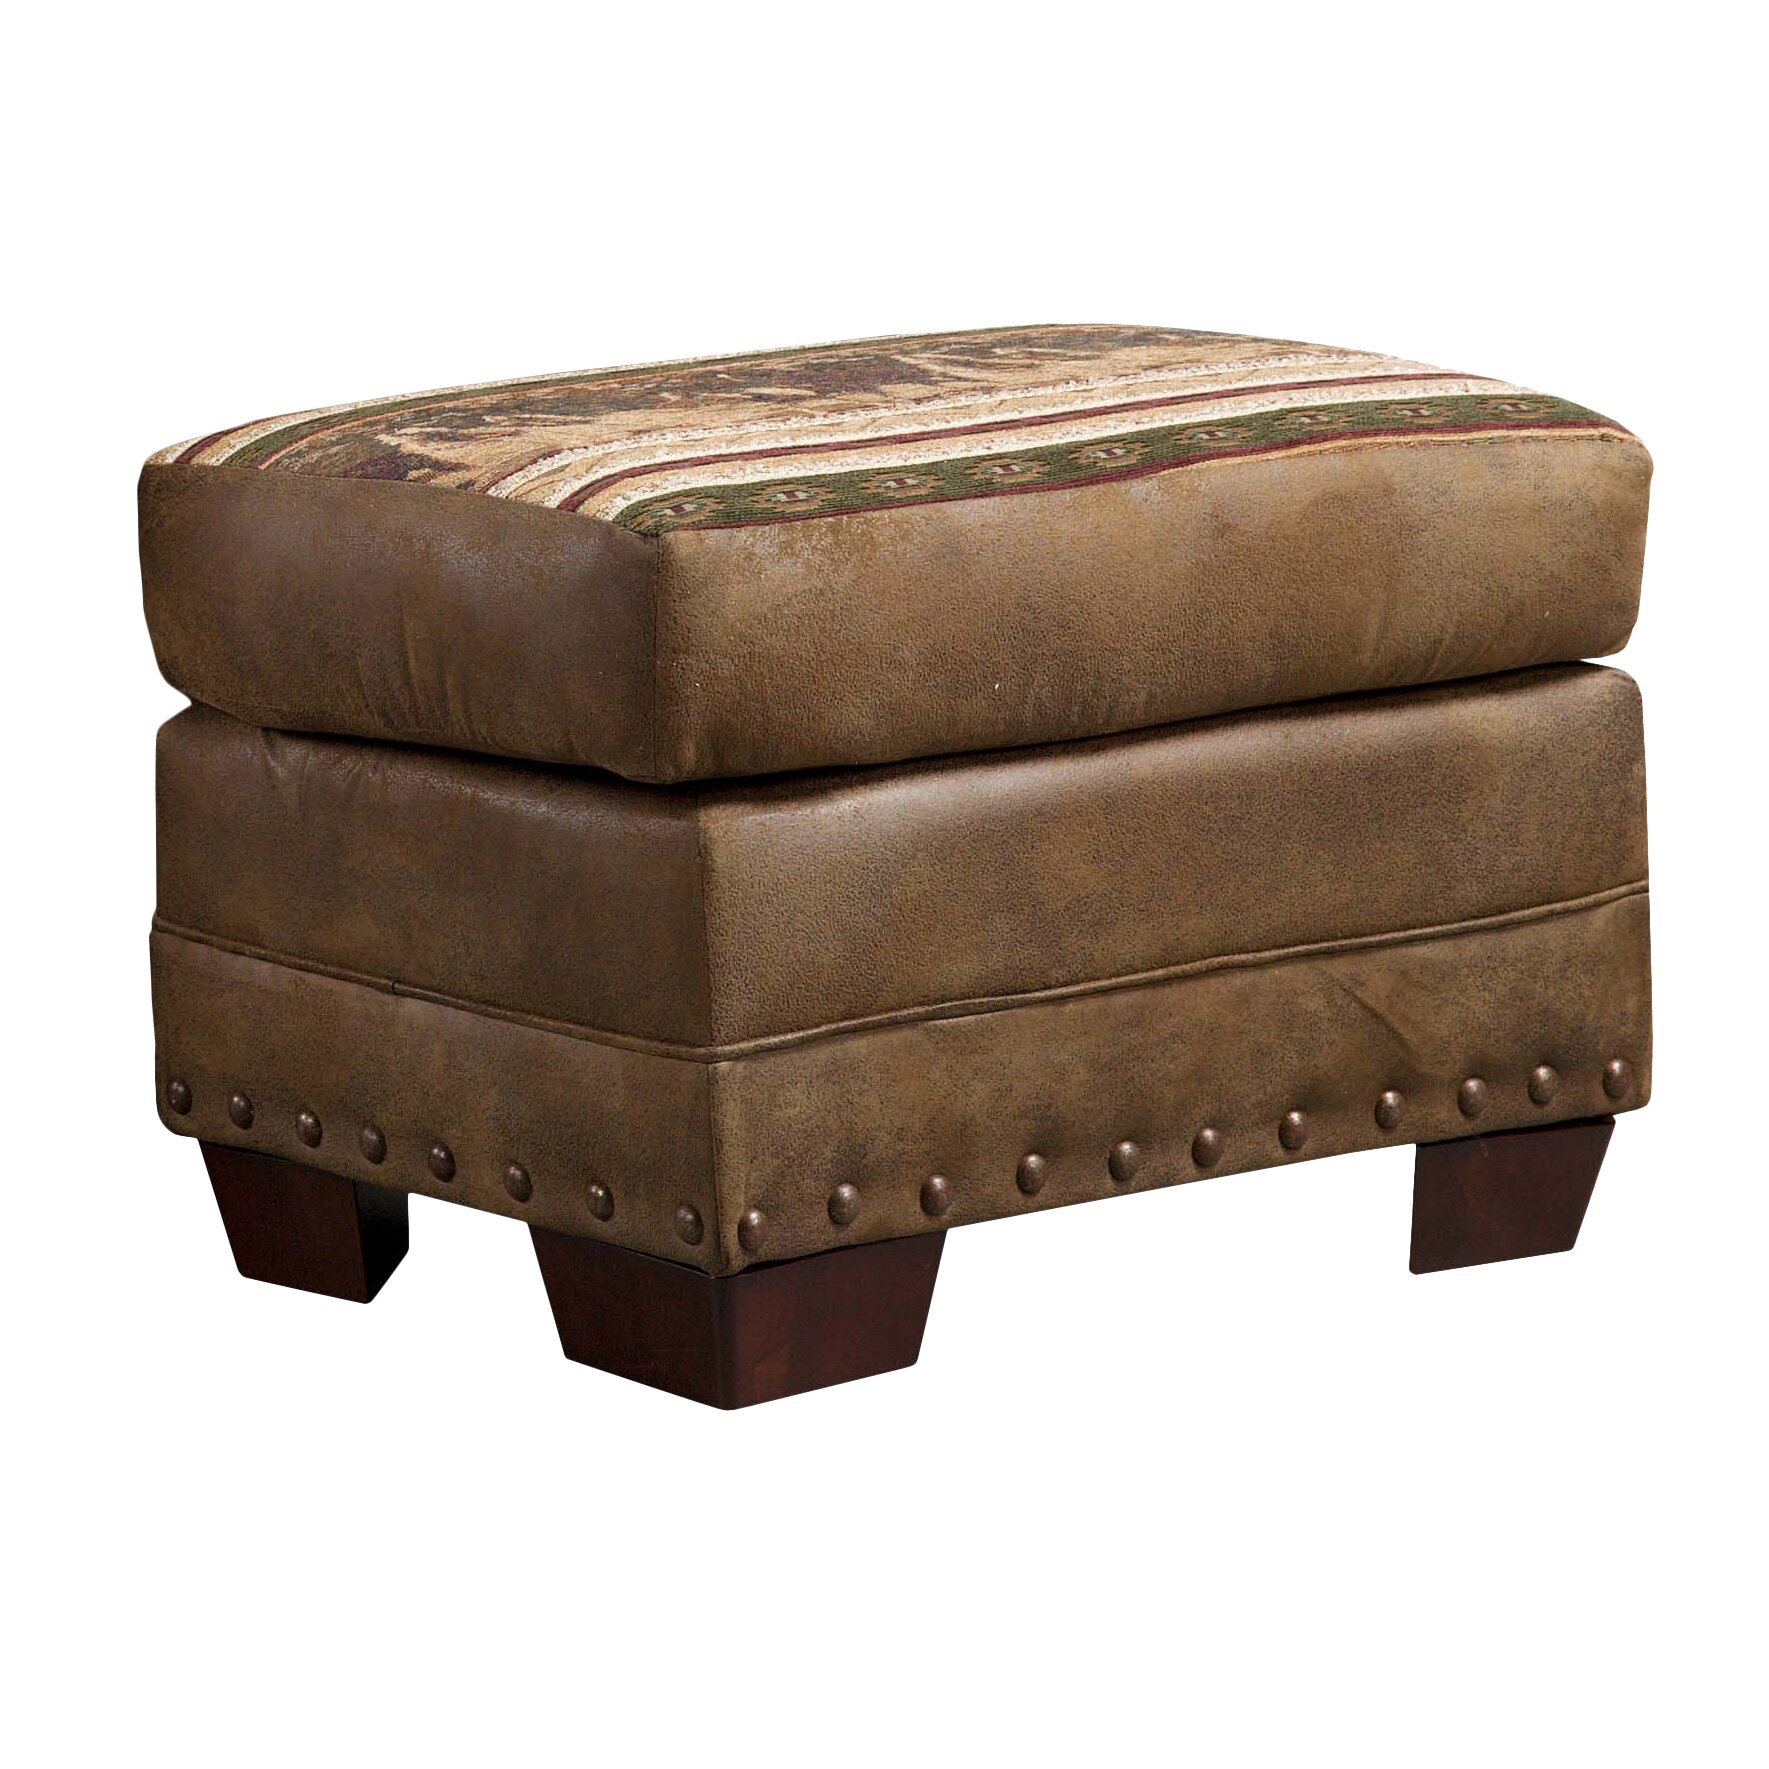 American Furniture Classics Lodge Wild Horses Ottoman Reviews Wayfair